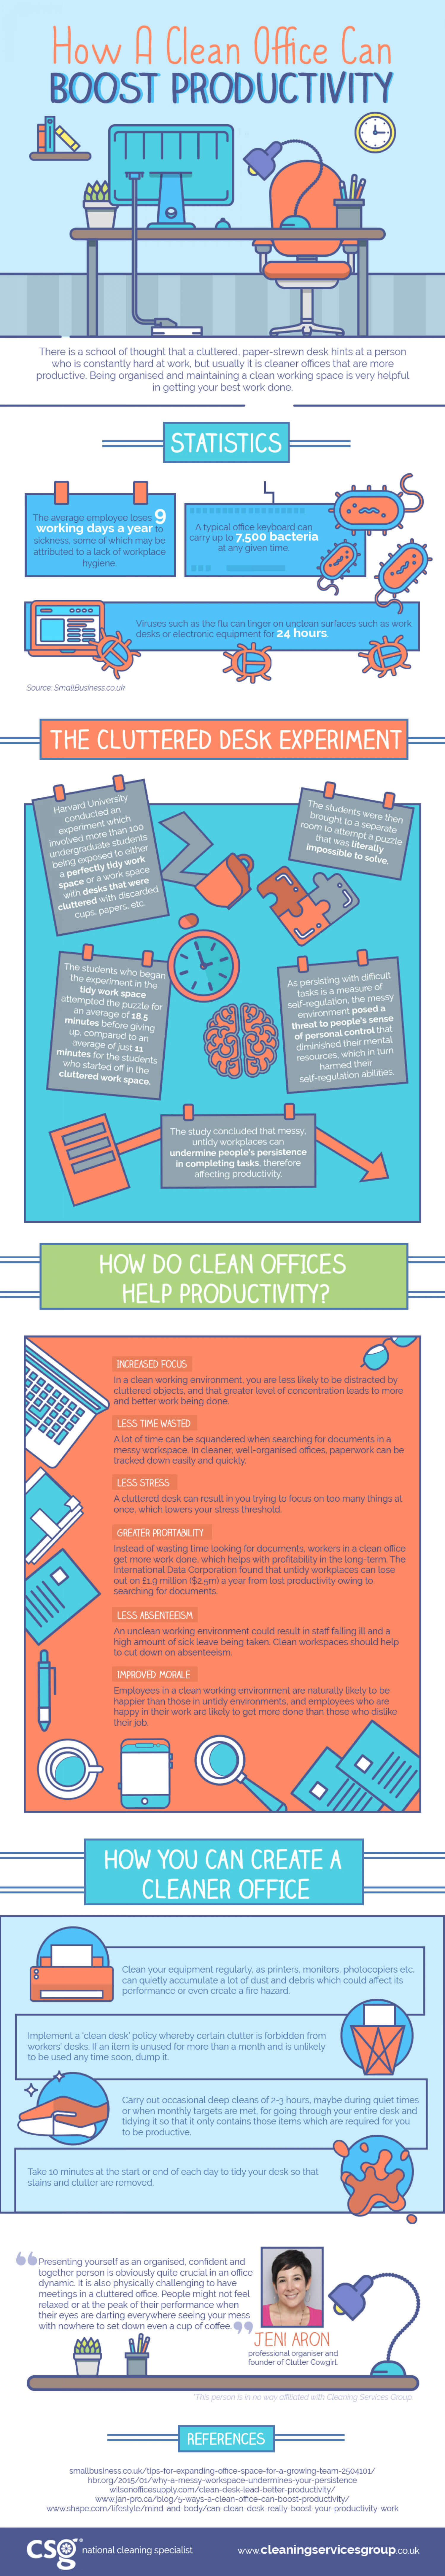 How a clean office can boost productivity – Infographic